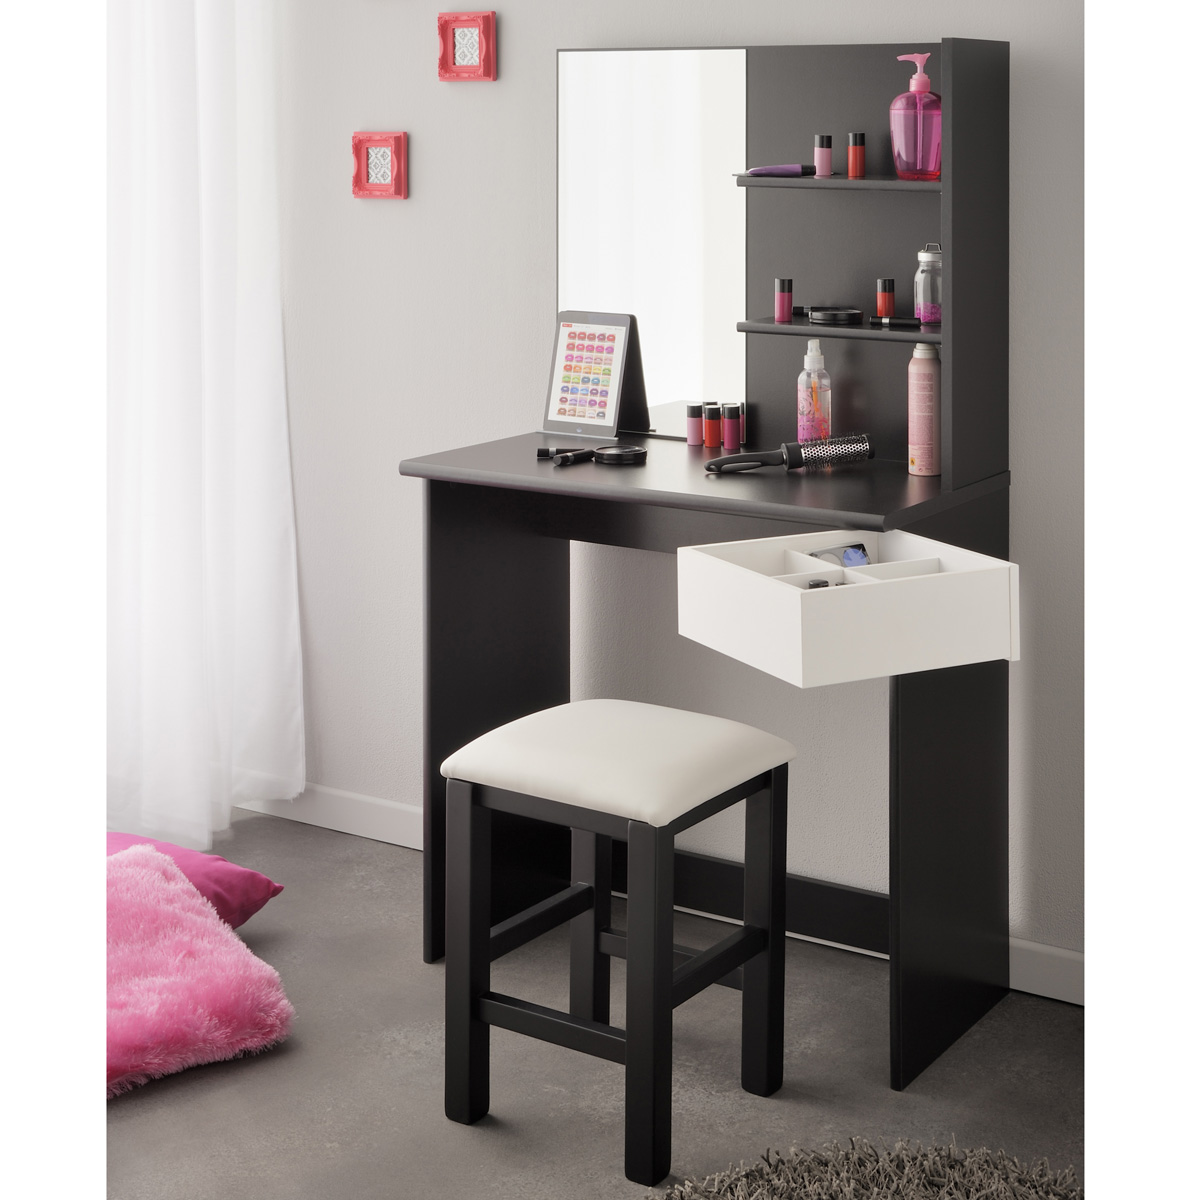 schminktisch pimpante mit hocker schwarz wei frisiertisch kosmetiktisch spiegel. Black Bedroom Furniture Sets. Home Design Ideas